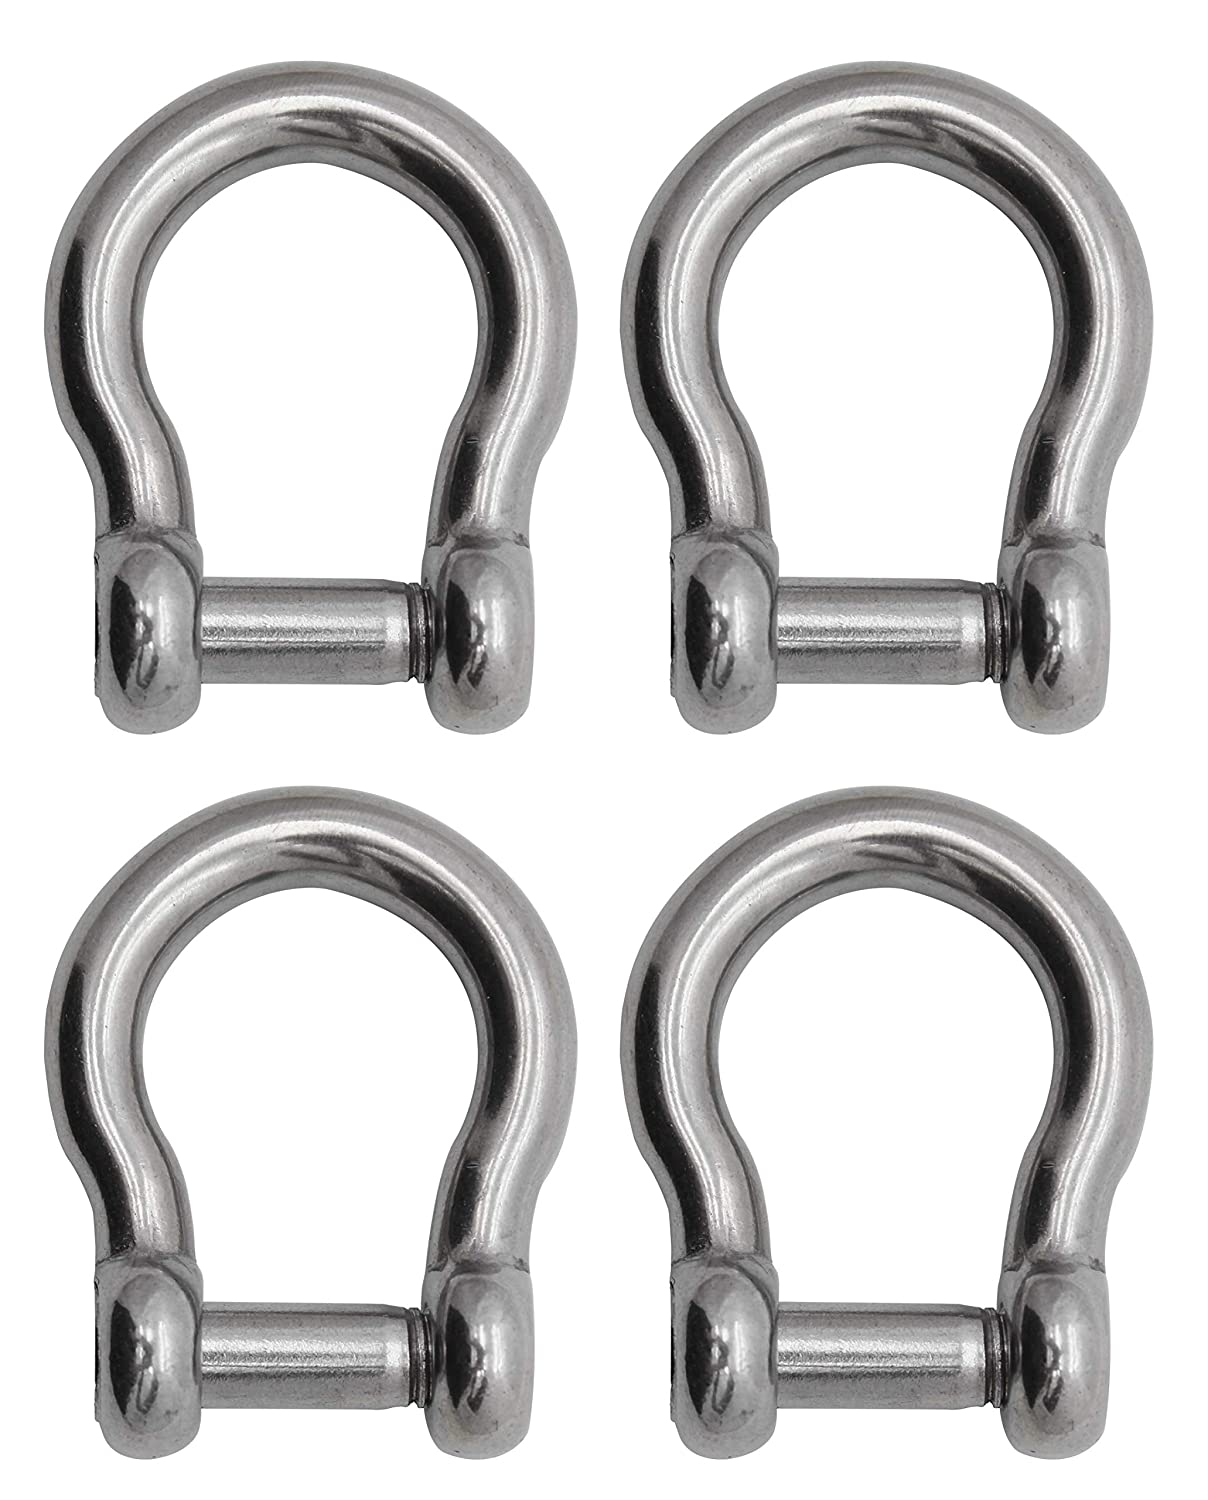 4-Pack Extreme Max Silver Standard 3006.8414.4 BoatTector Stainless Steel Bow Shackle with No-Snag Pin-1//2